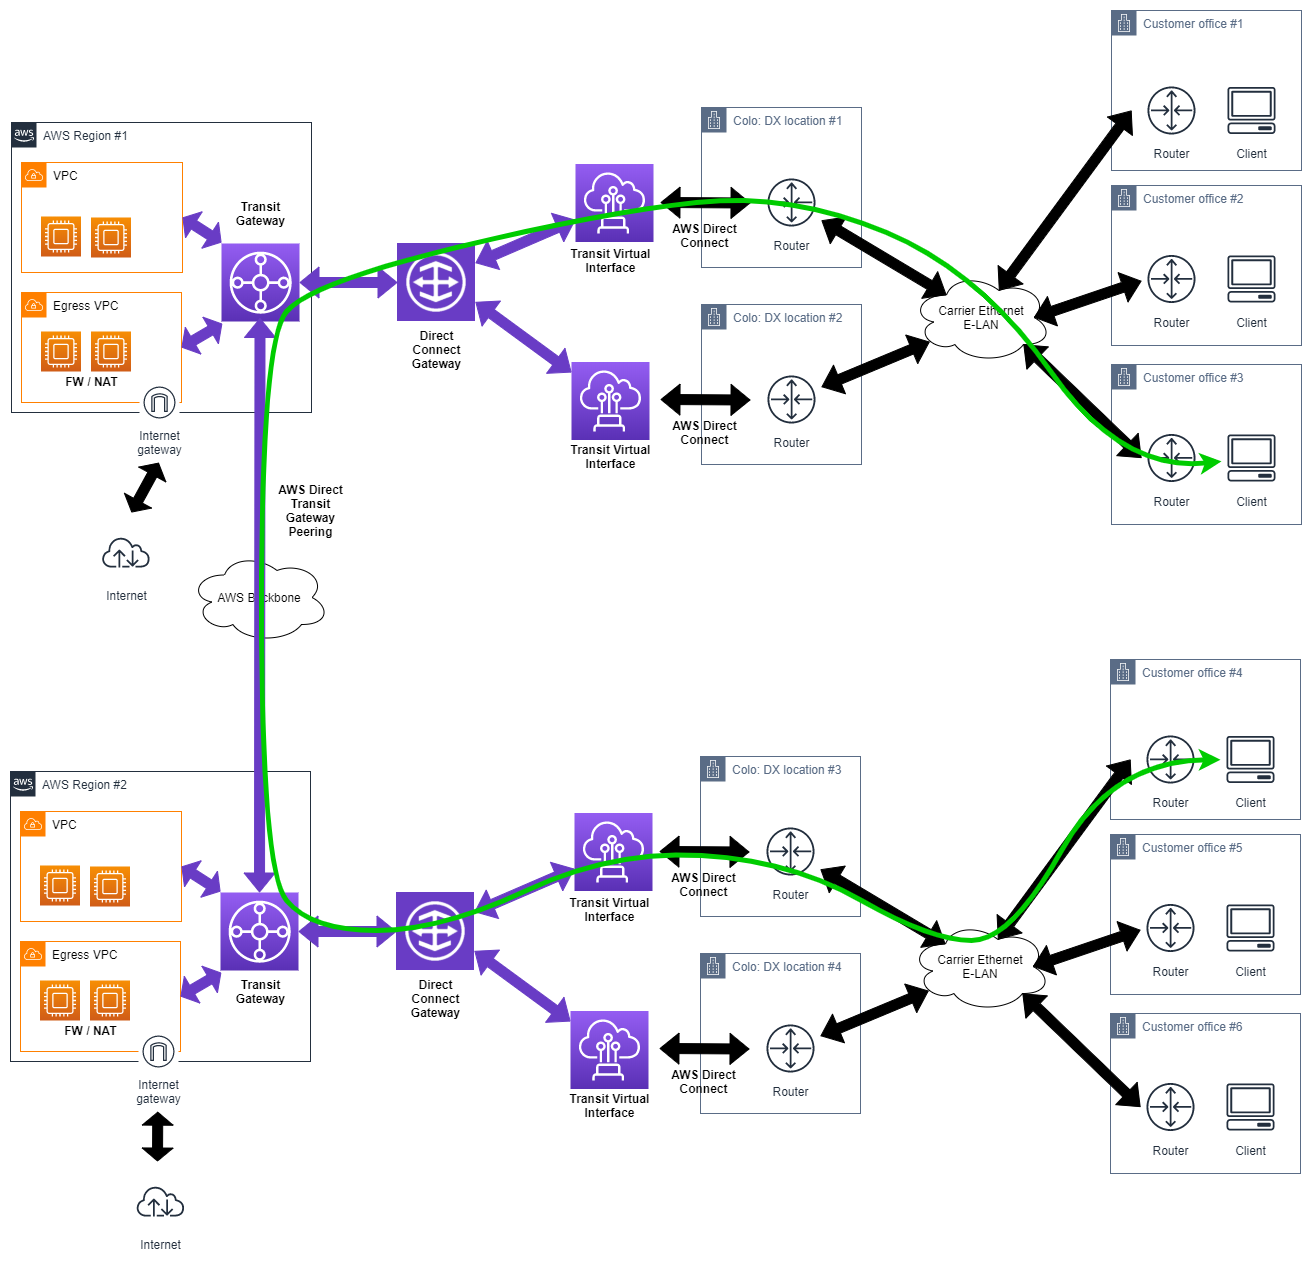 Aws Direct Connect Network Diagram: Enabling Connectivity Between On-premises Locations